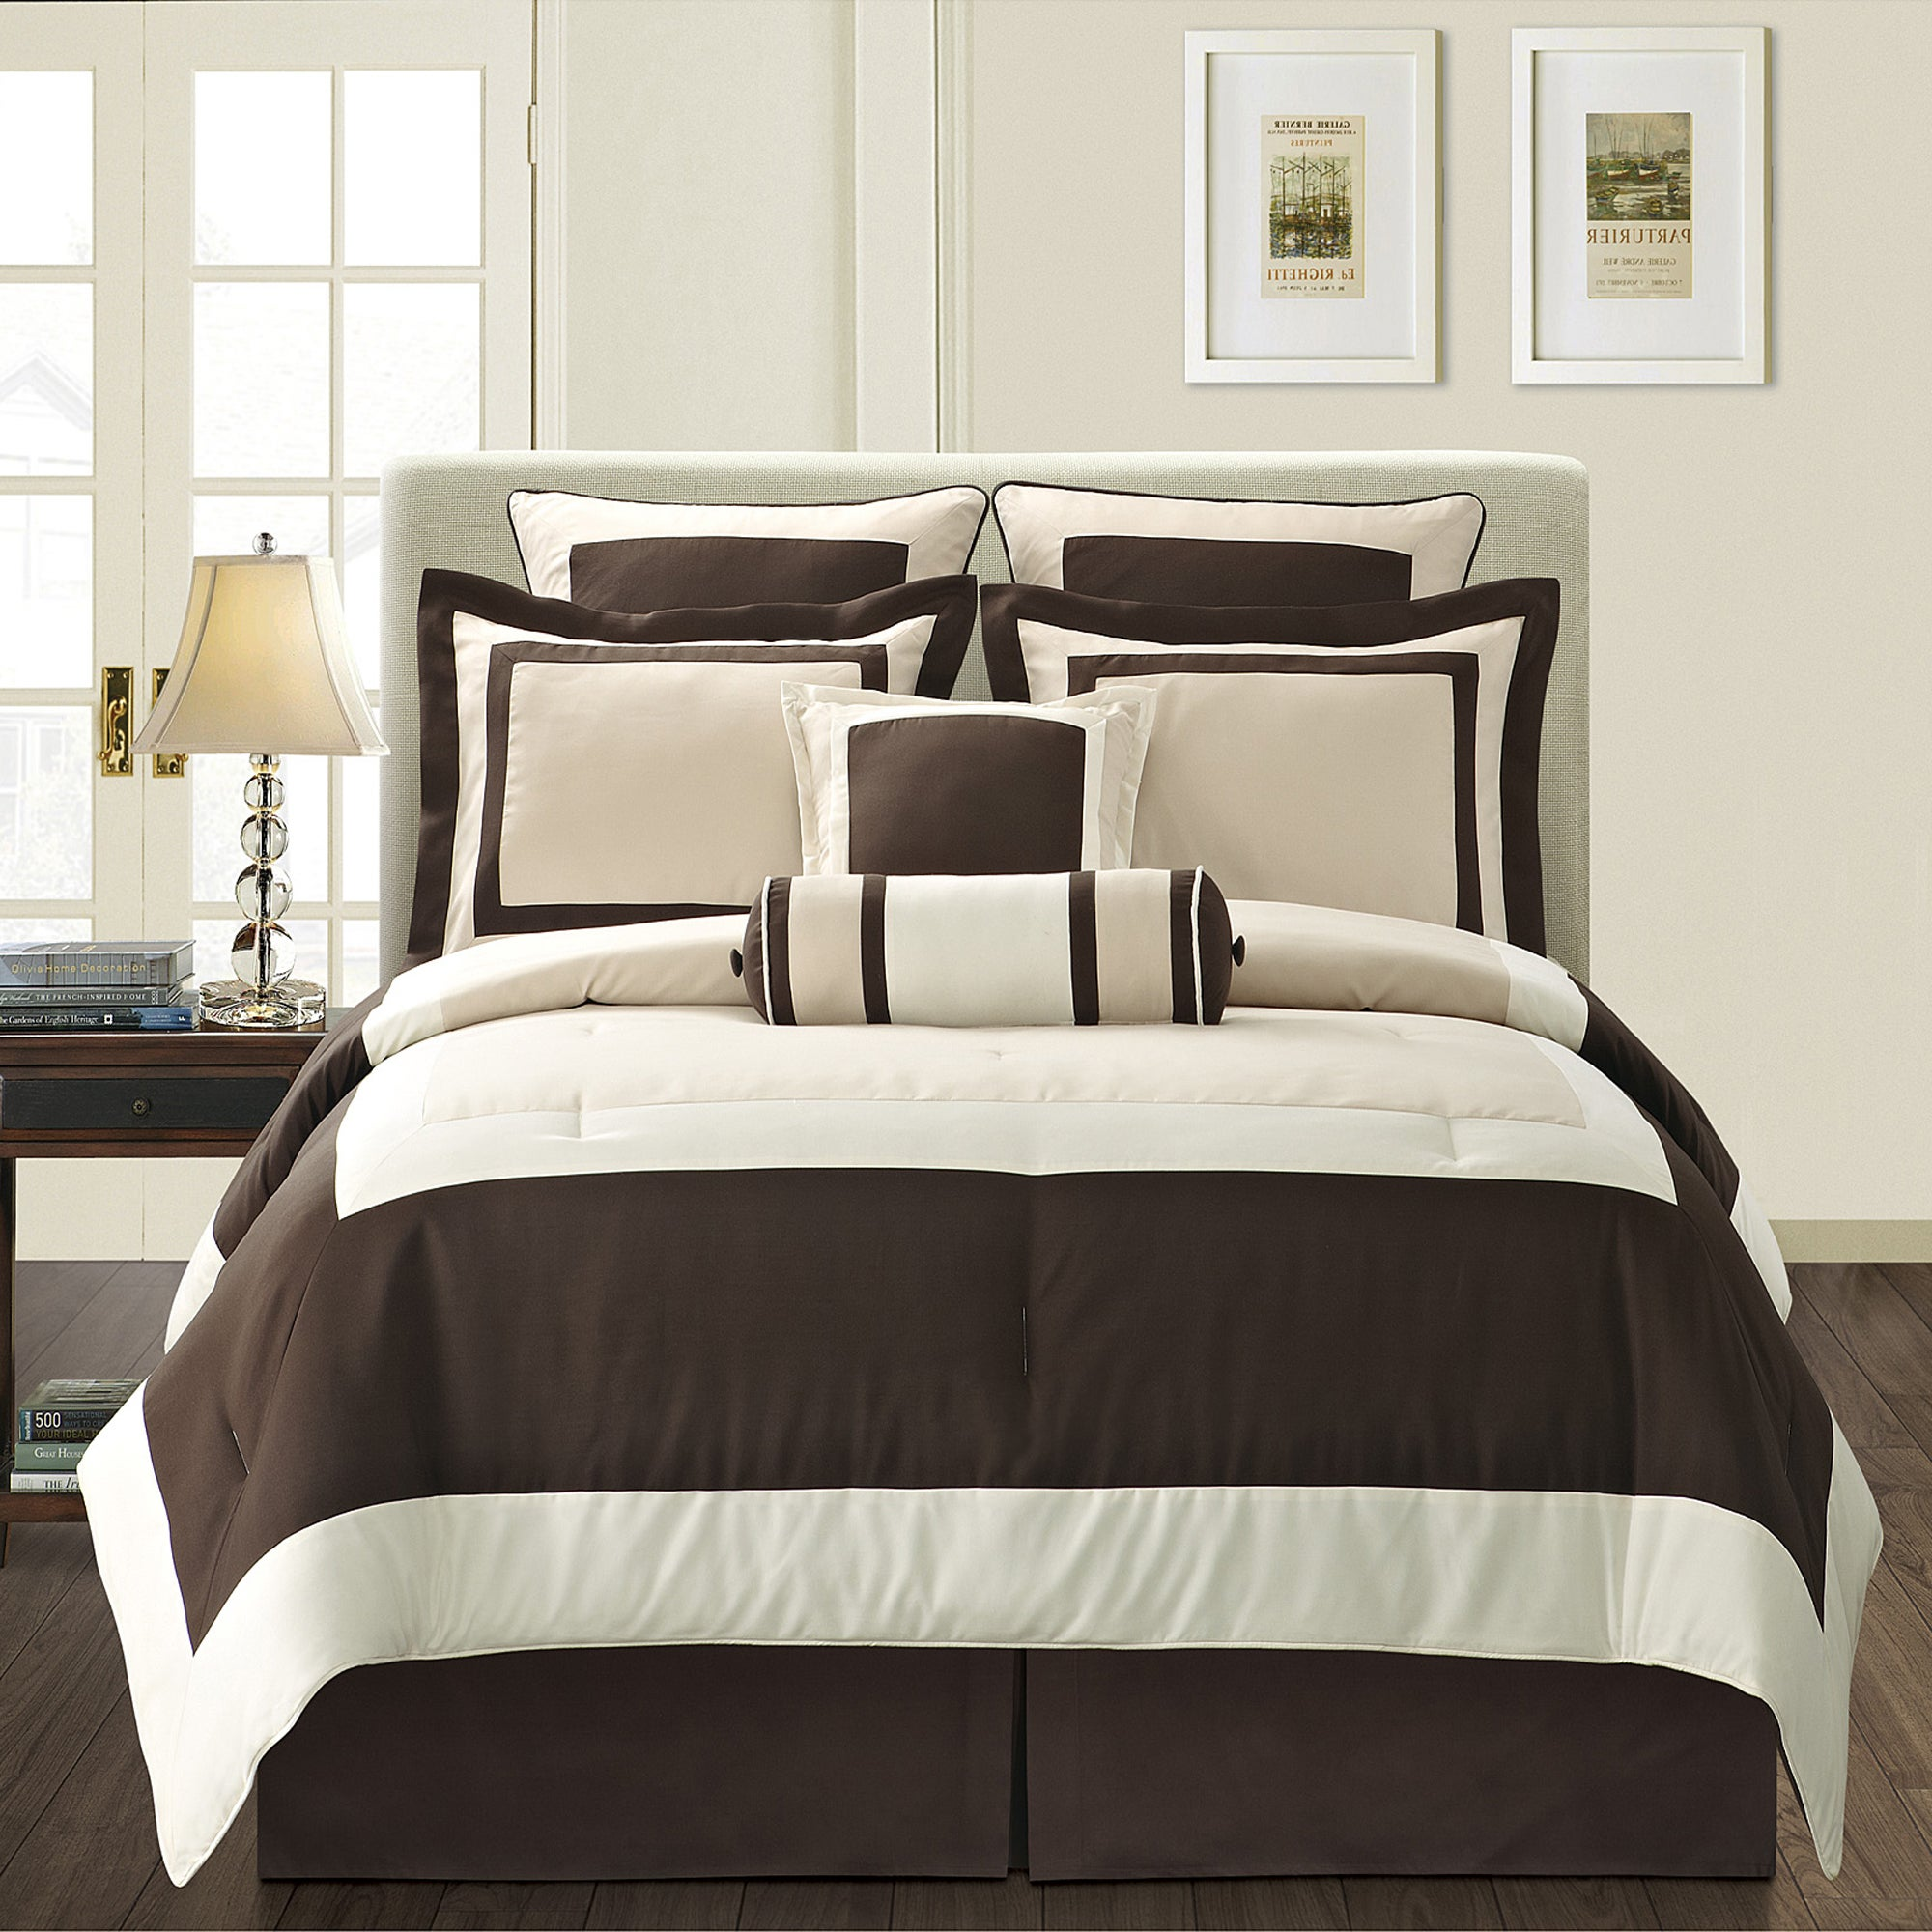 ivory gramercy california king size 8 piece comforter set overstock